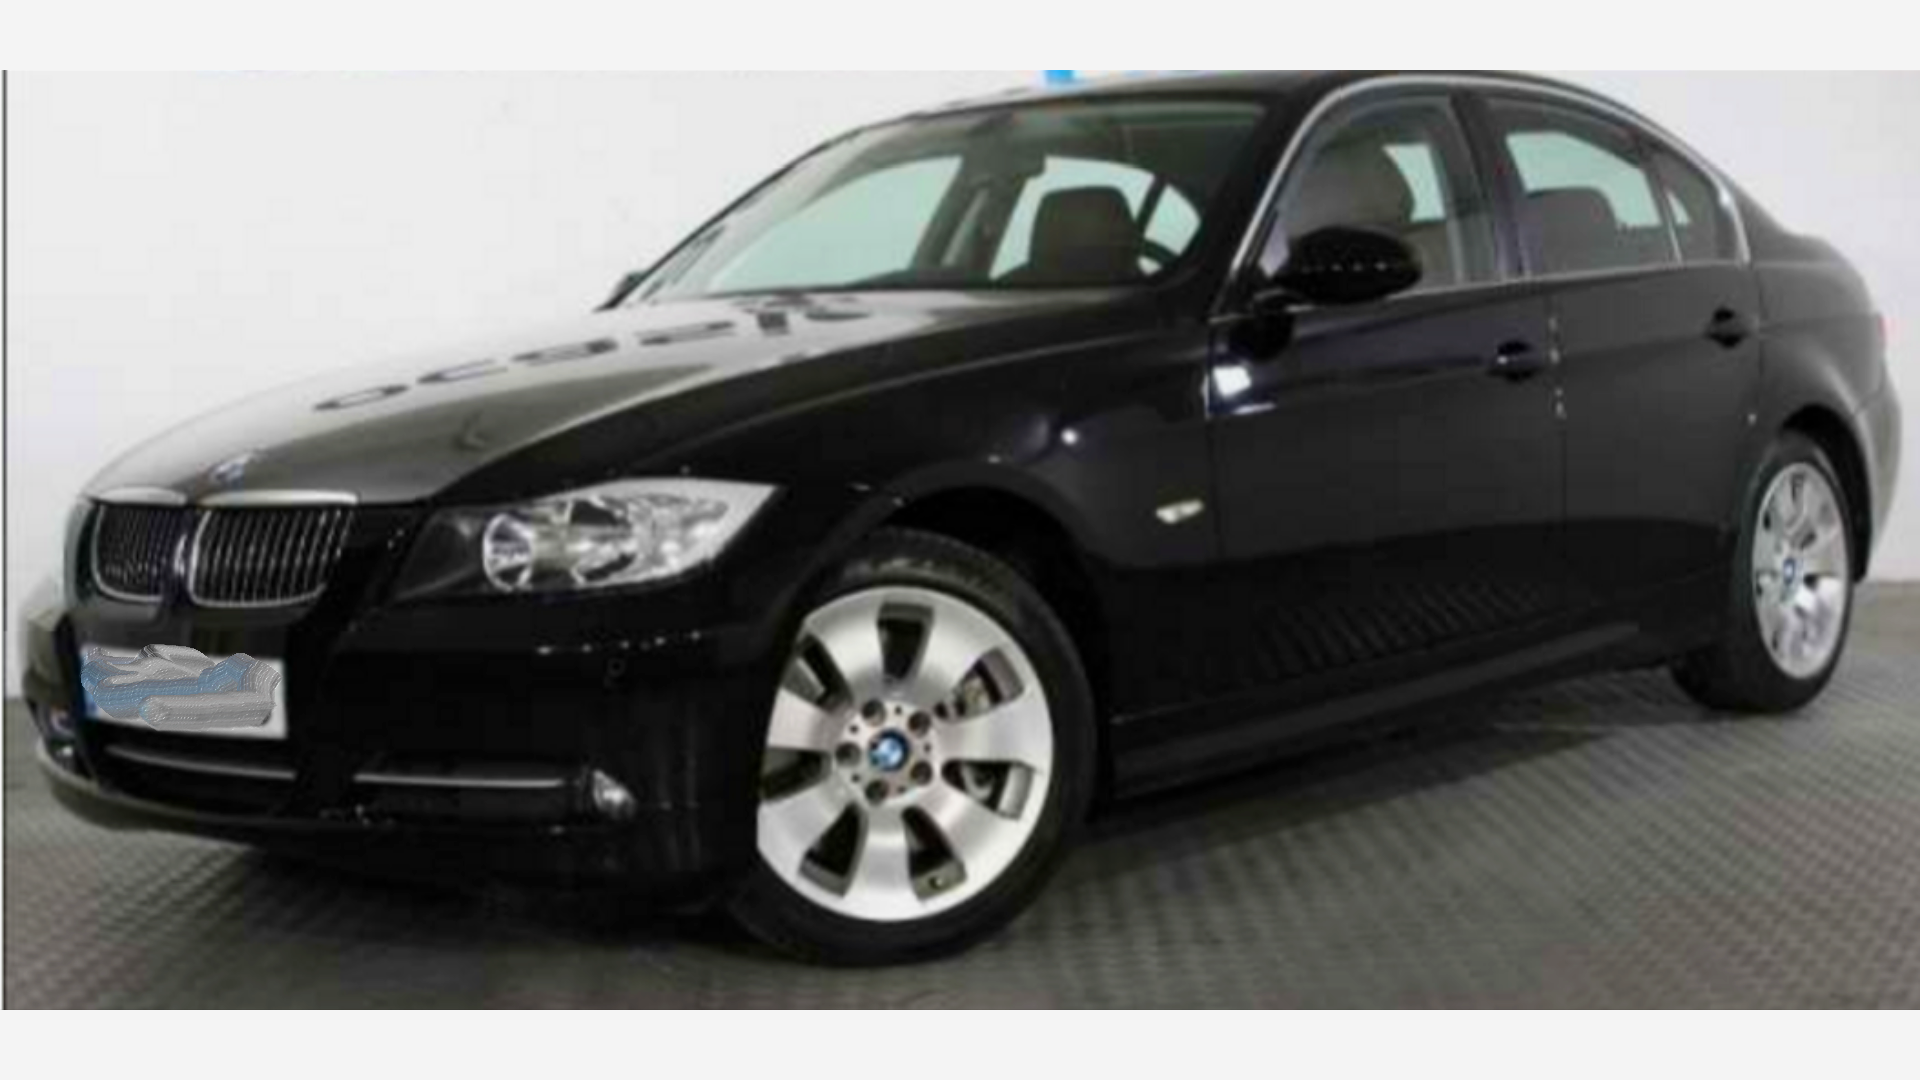 BMW 335I BI-TURBO, 2011, SP98, Automático